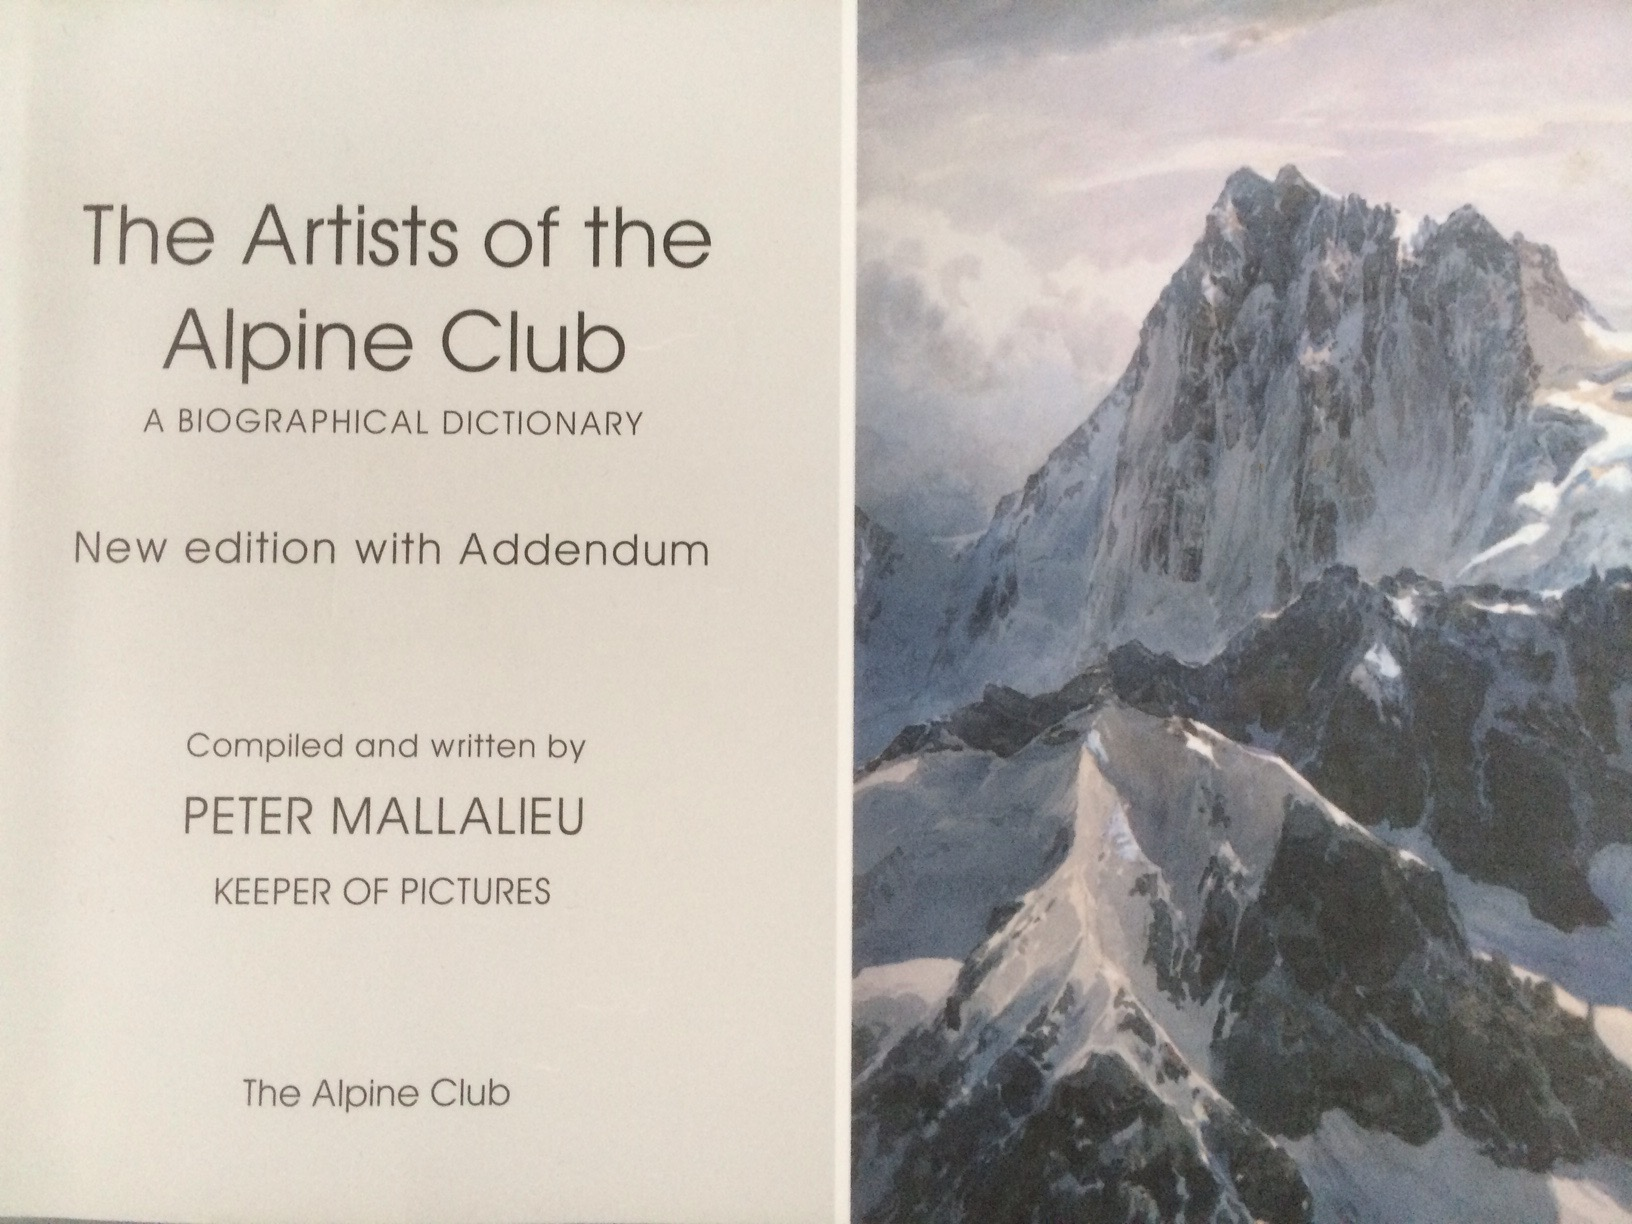 The Artists of the Alpine Club